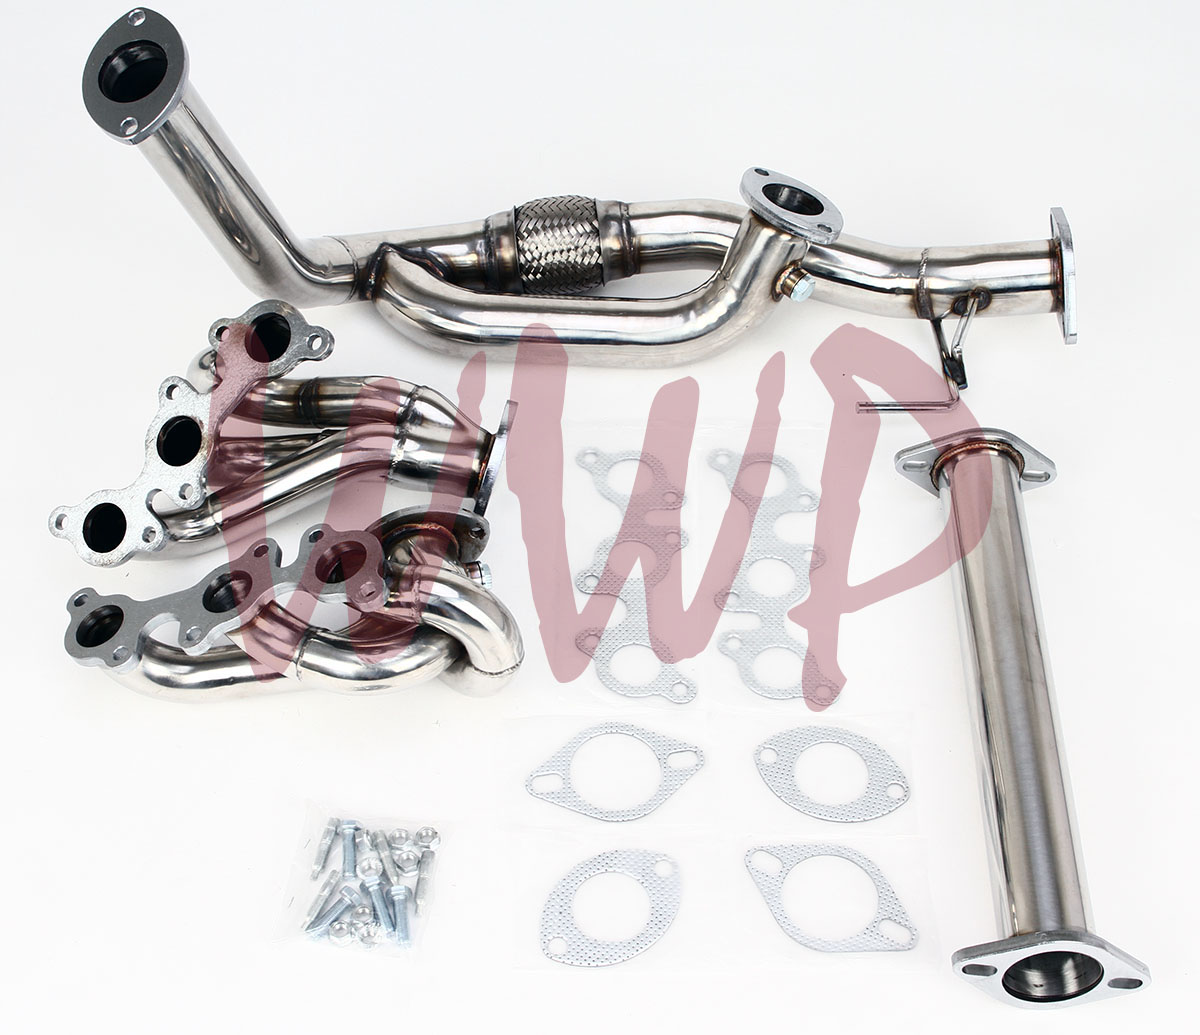 Toyota Solara Exhaust Manifold Engine System Intake: Stainless Steel Exhaust Headers Manifold System For 96-01